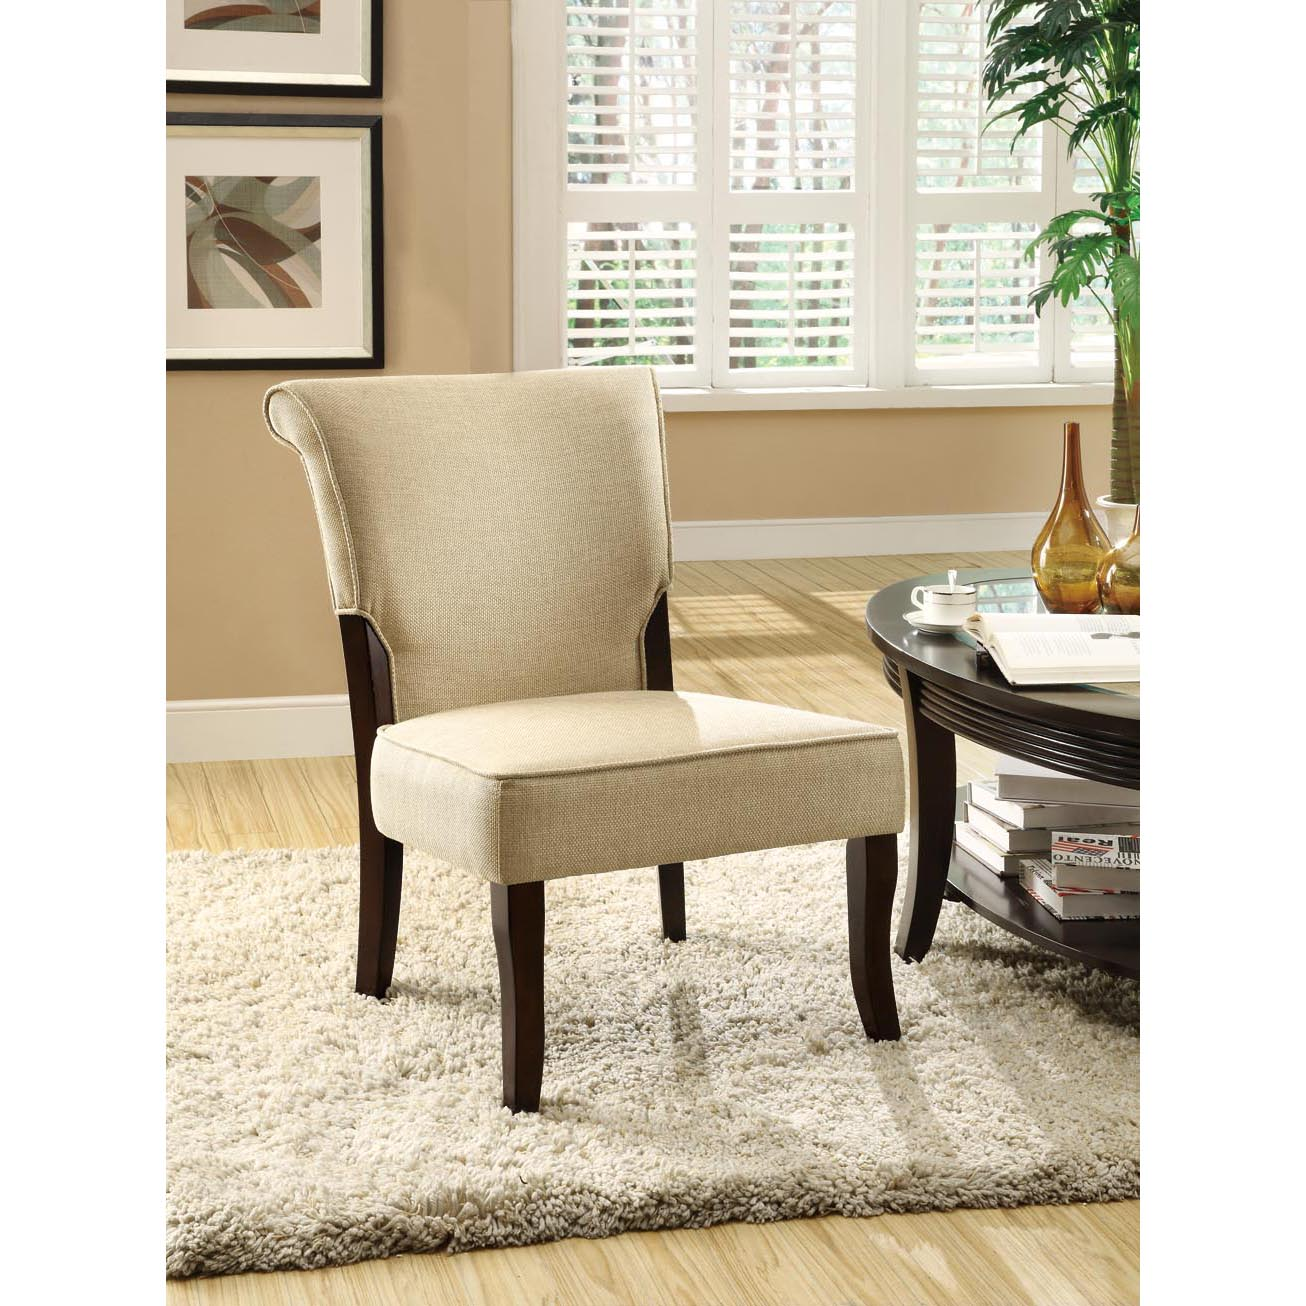 Beige/ Cappuccino Linen Fabric Accent Chair